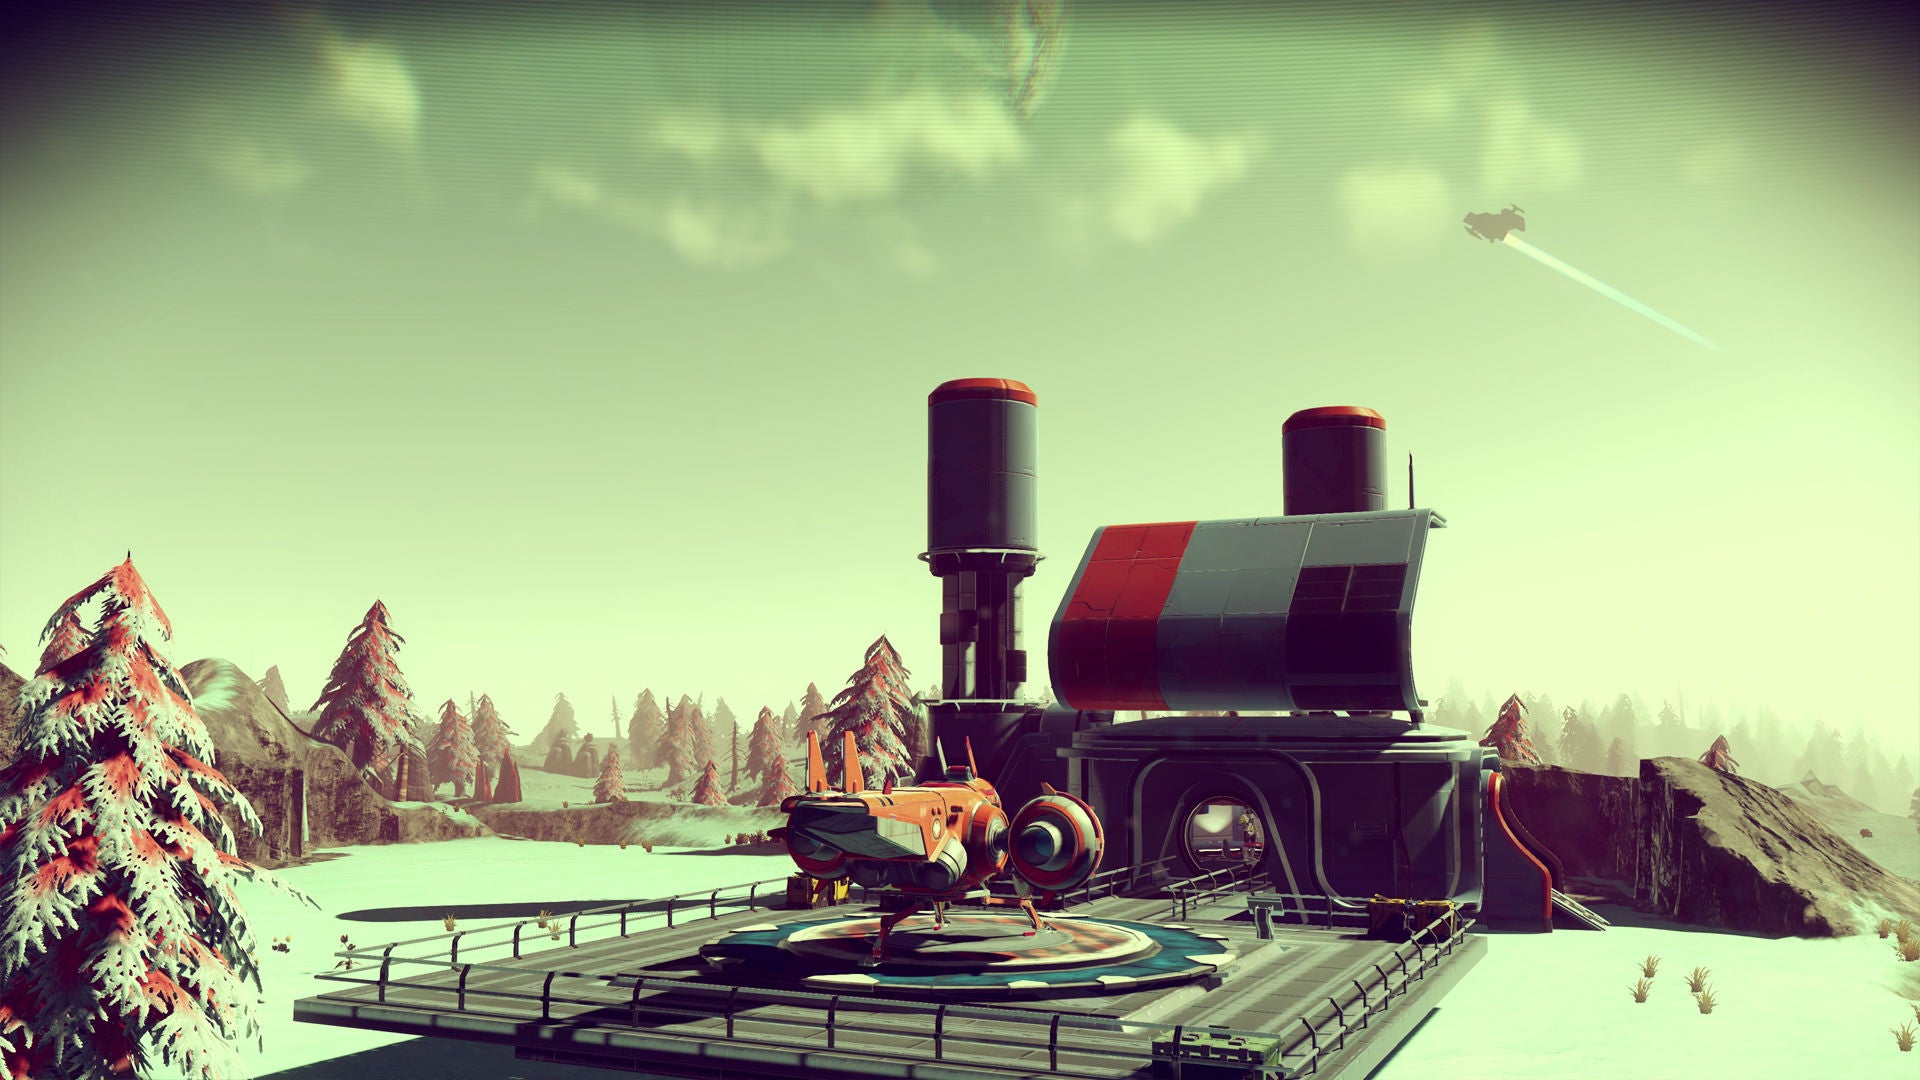 No Man's Sky Just Got Even Cooler, Now That We've Seen Its Aliens